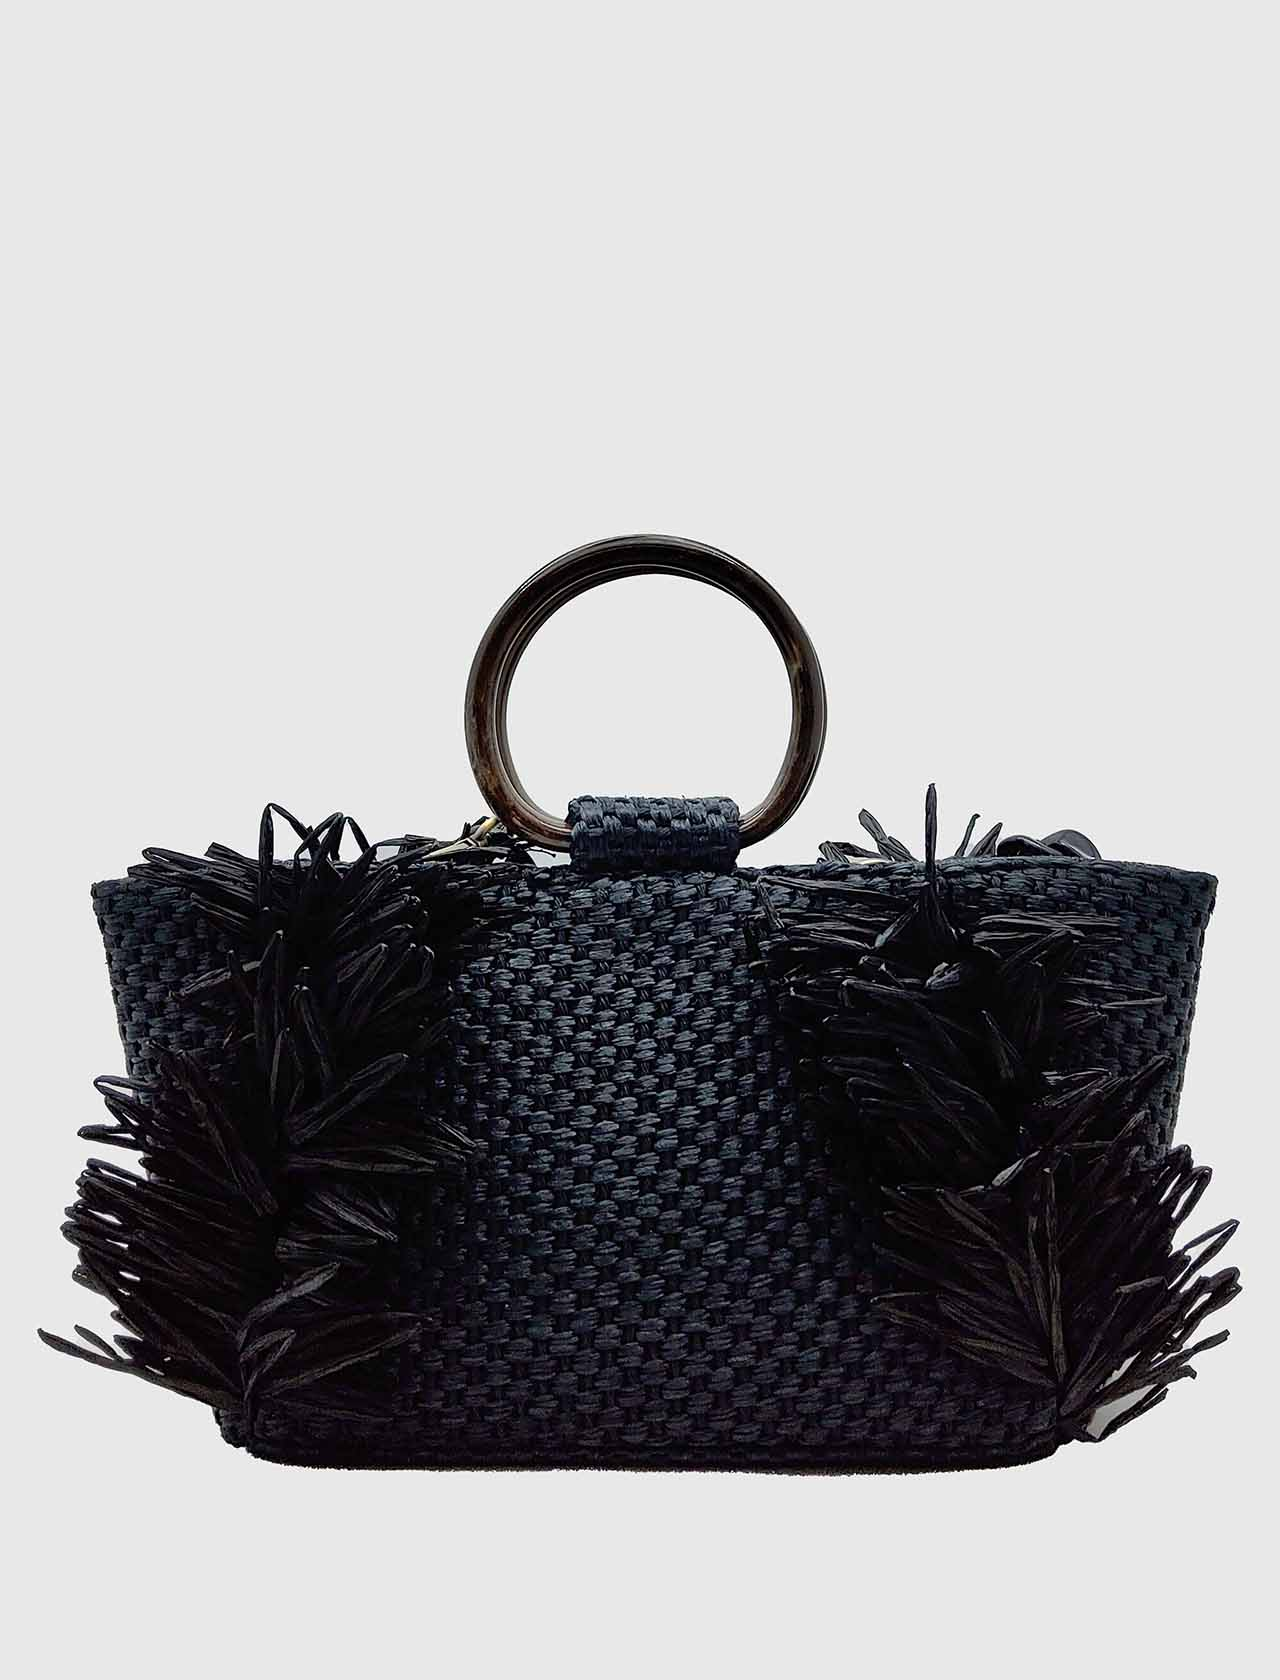 Woman Bag In Black Woven Raffia With Resin Handles And Removable Chain Shoulder Strap Via Mail Bag | Bags and backpacks | RAFIAR03